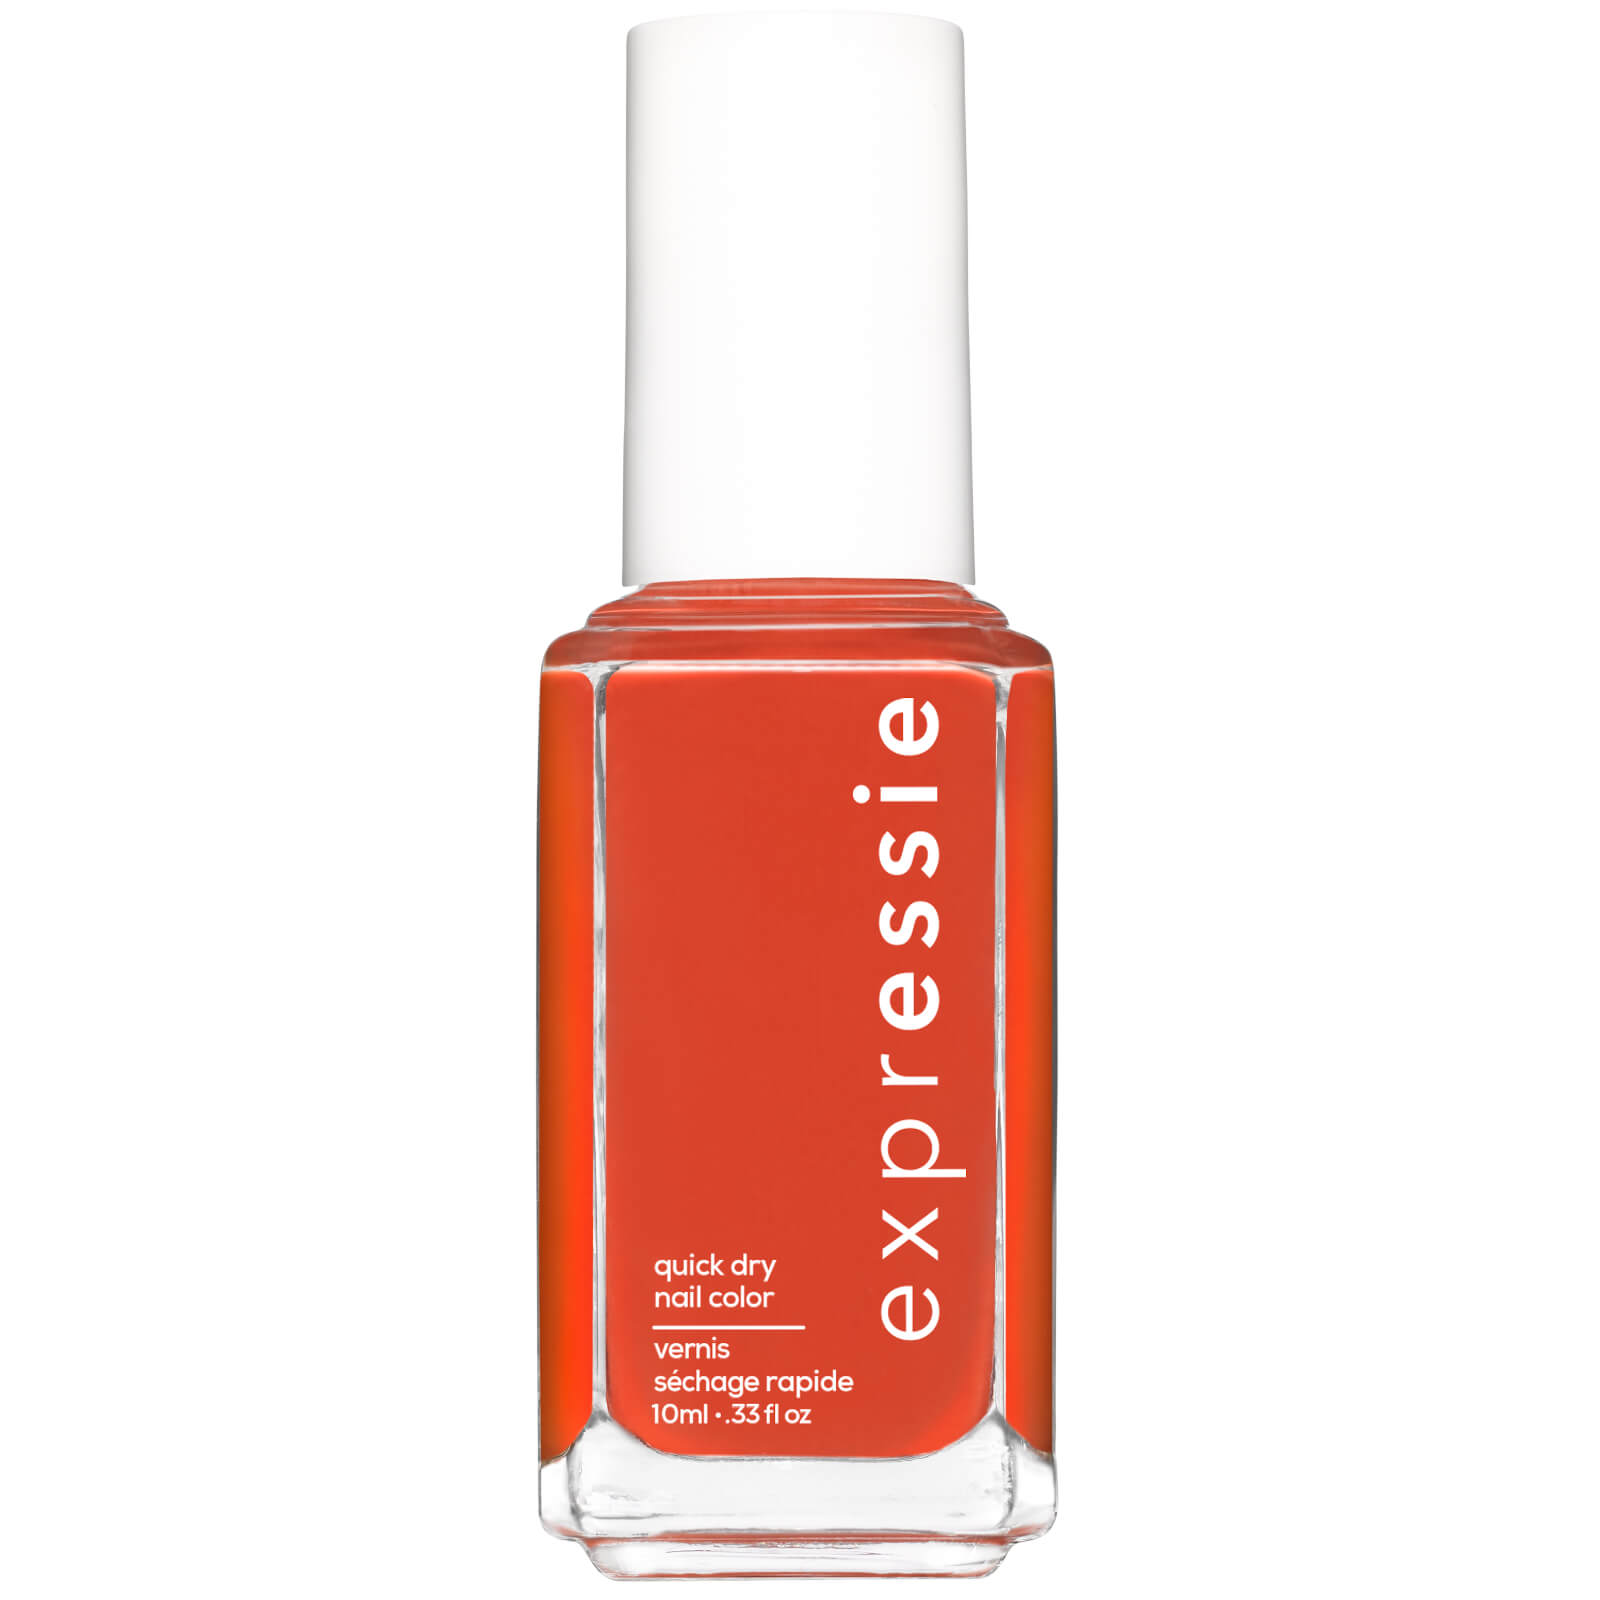 essie Expressie Quick Dry Formula Chip Resistant Nail Polish 10ml (Various Shades) - 160 In  Flash Sale